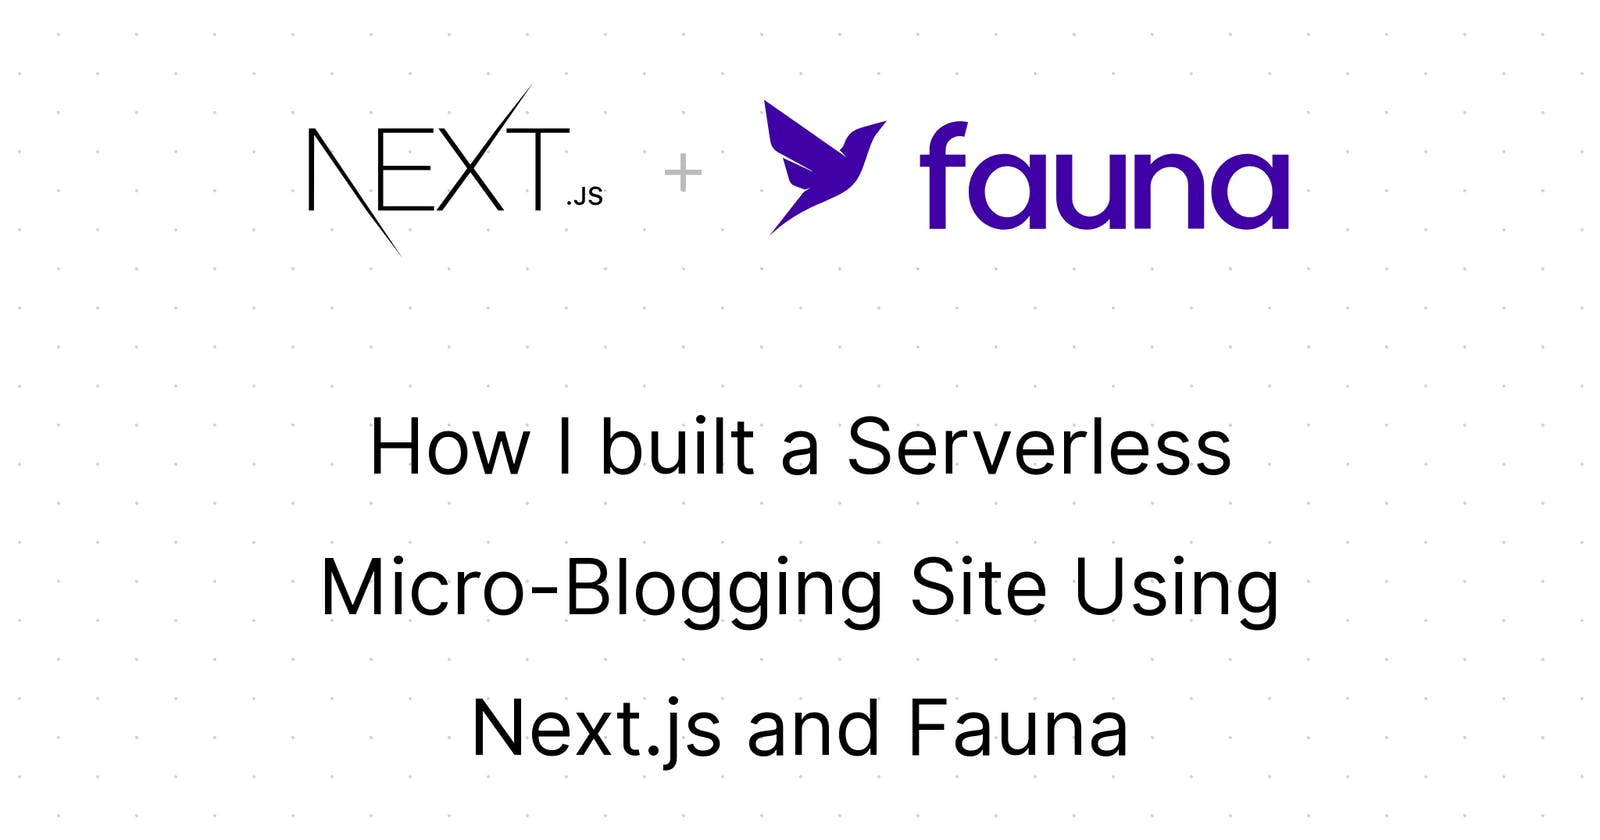 How I built a Serverless Micro-Blogging Site Using Next.js and Fauna